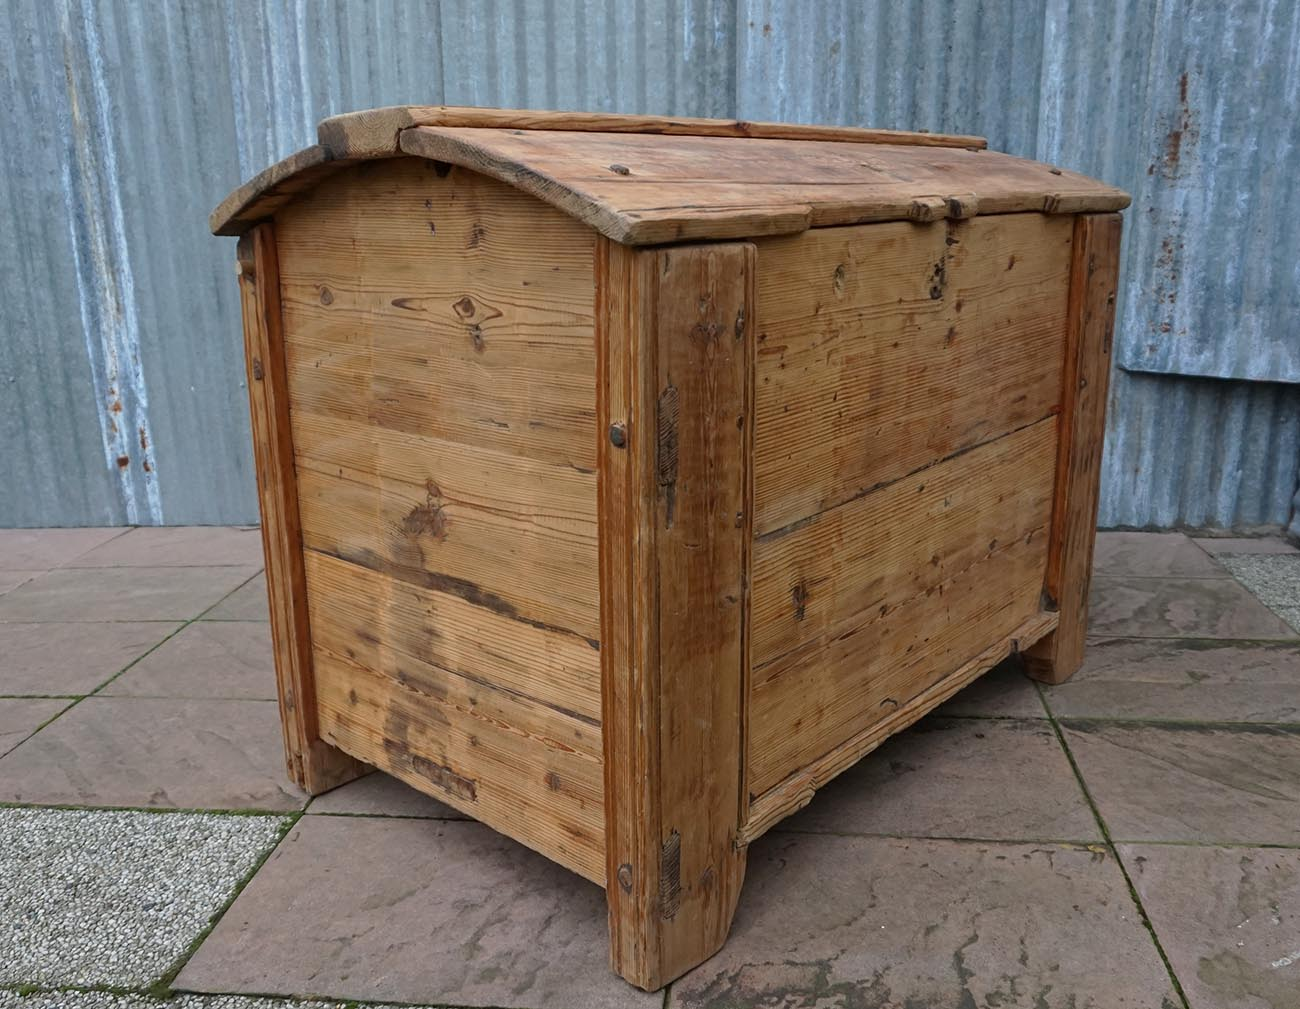 Houten Grote Kist.Large Antique Pine Wood Storage Trunk